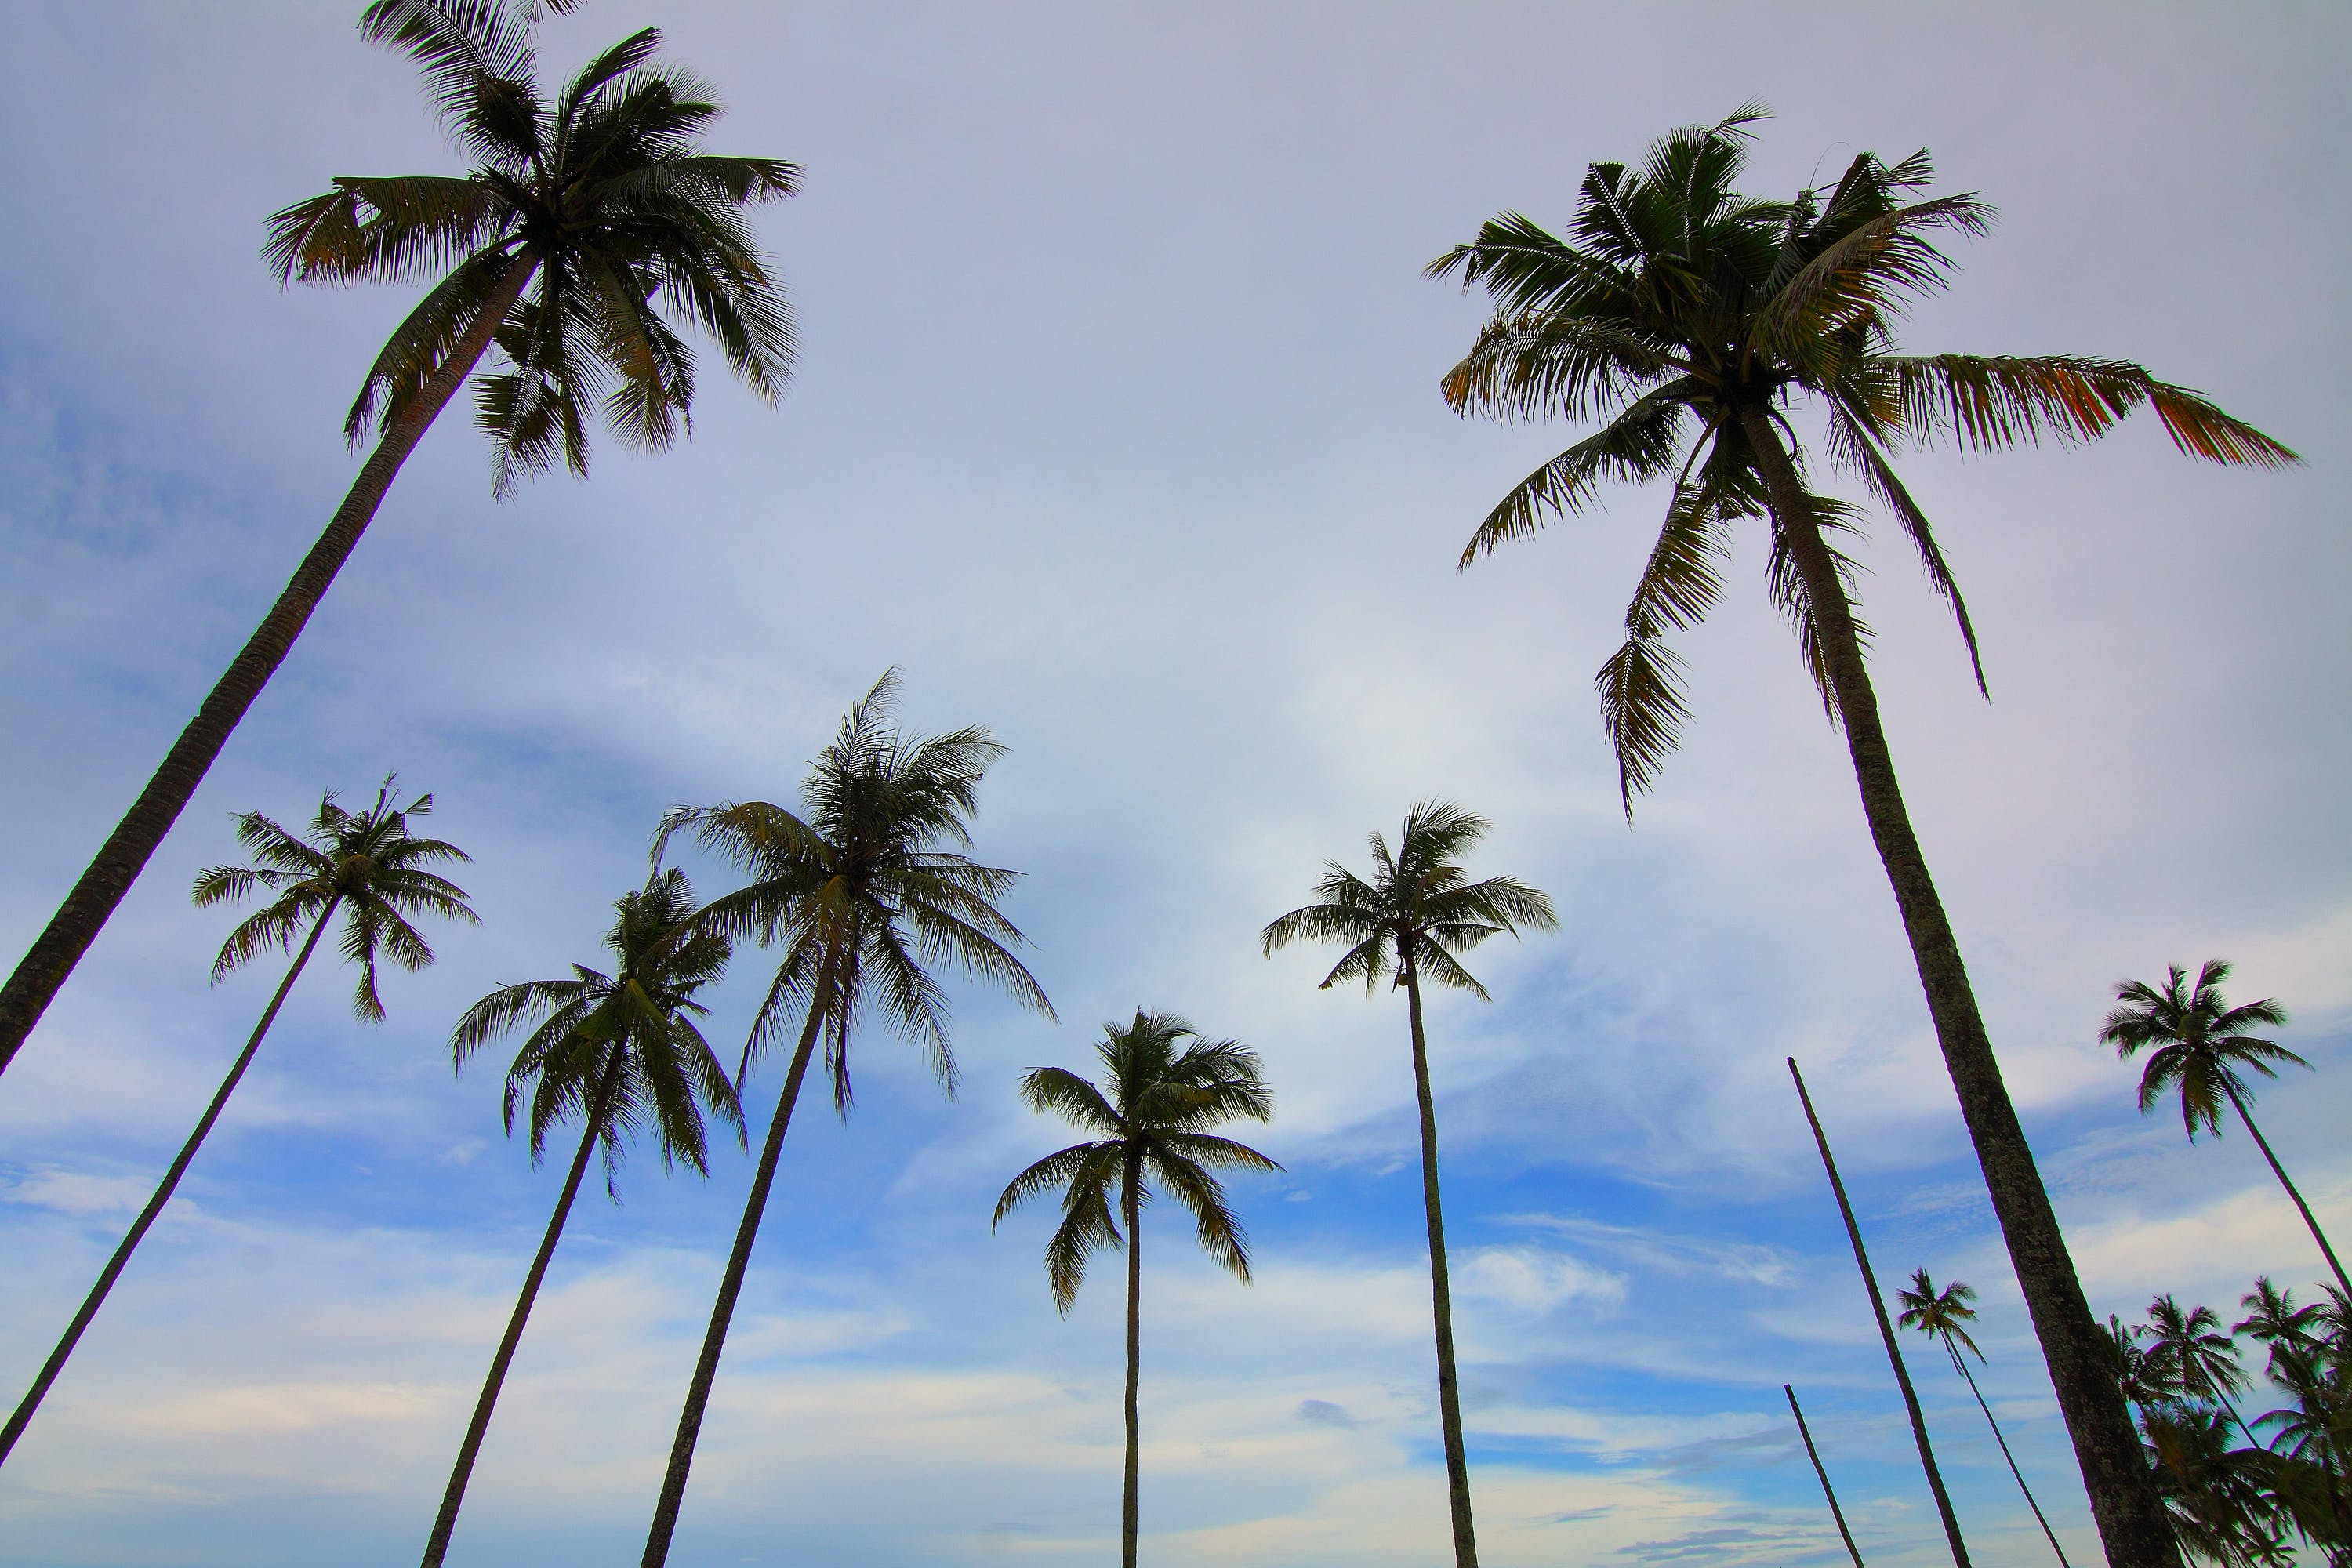 Wide Angle Photography of Coconut Trees